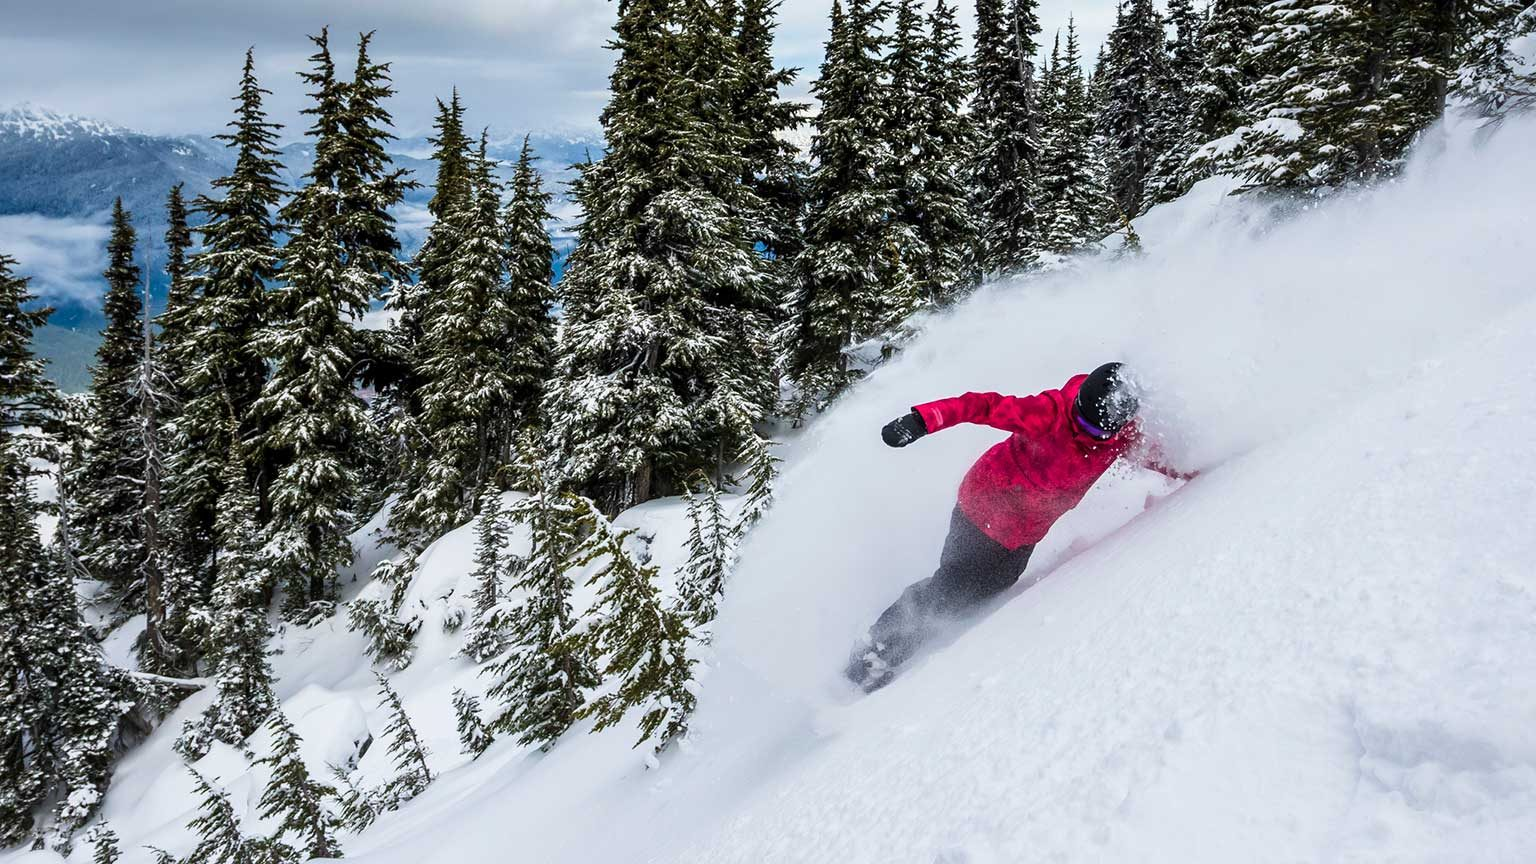 Snowboarding on the slopes of Whistler.